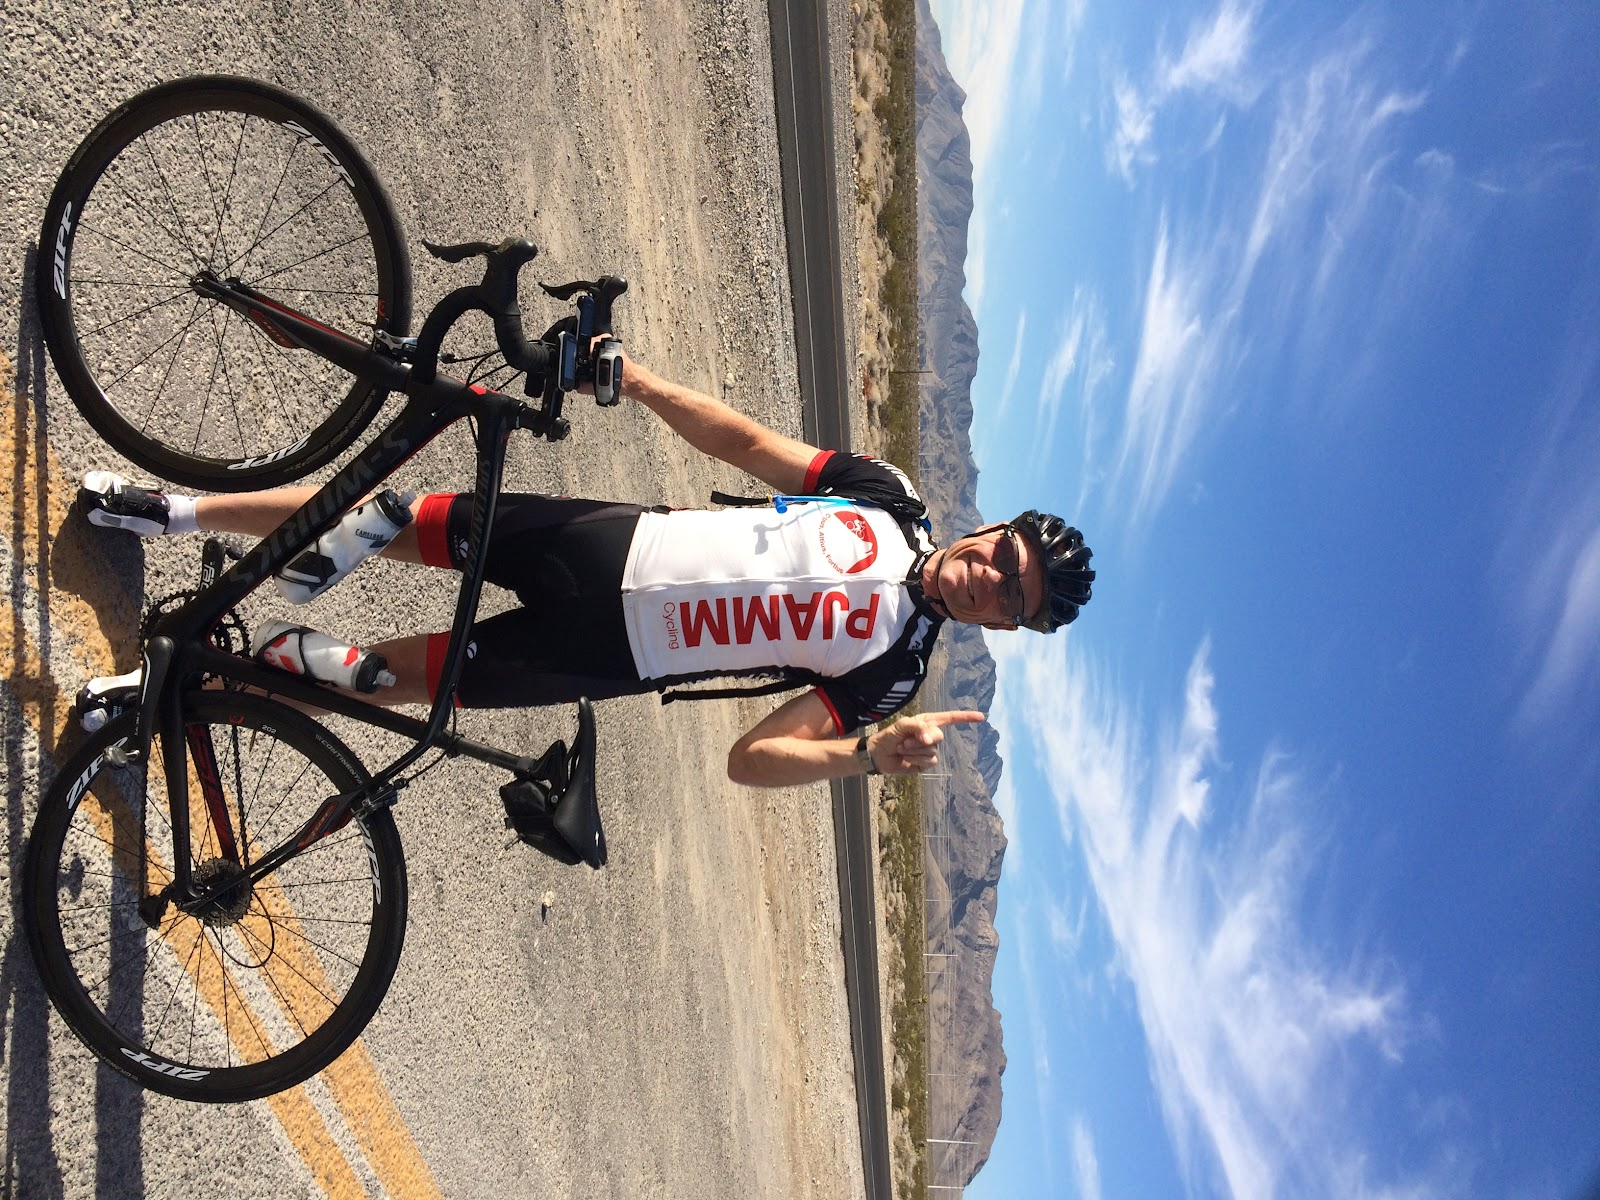 John Johnson PJAMM Cycling with bike on Kyle Canyon Hwy 157 Mt Charleston bike climb.